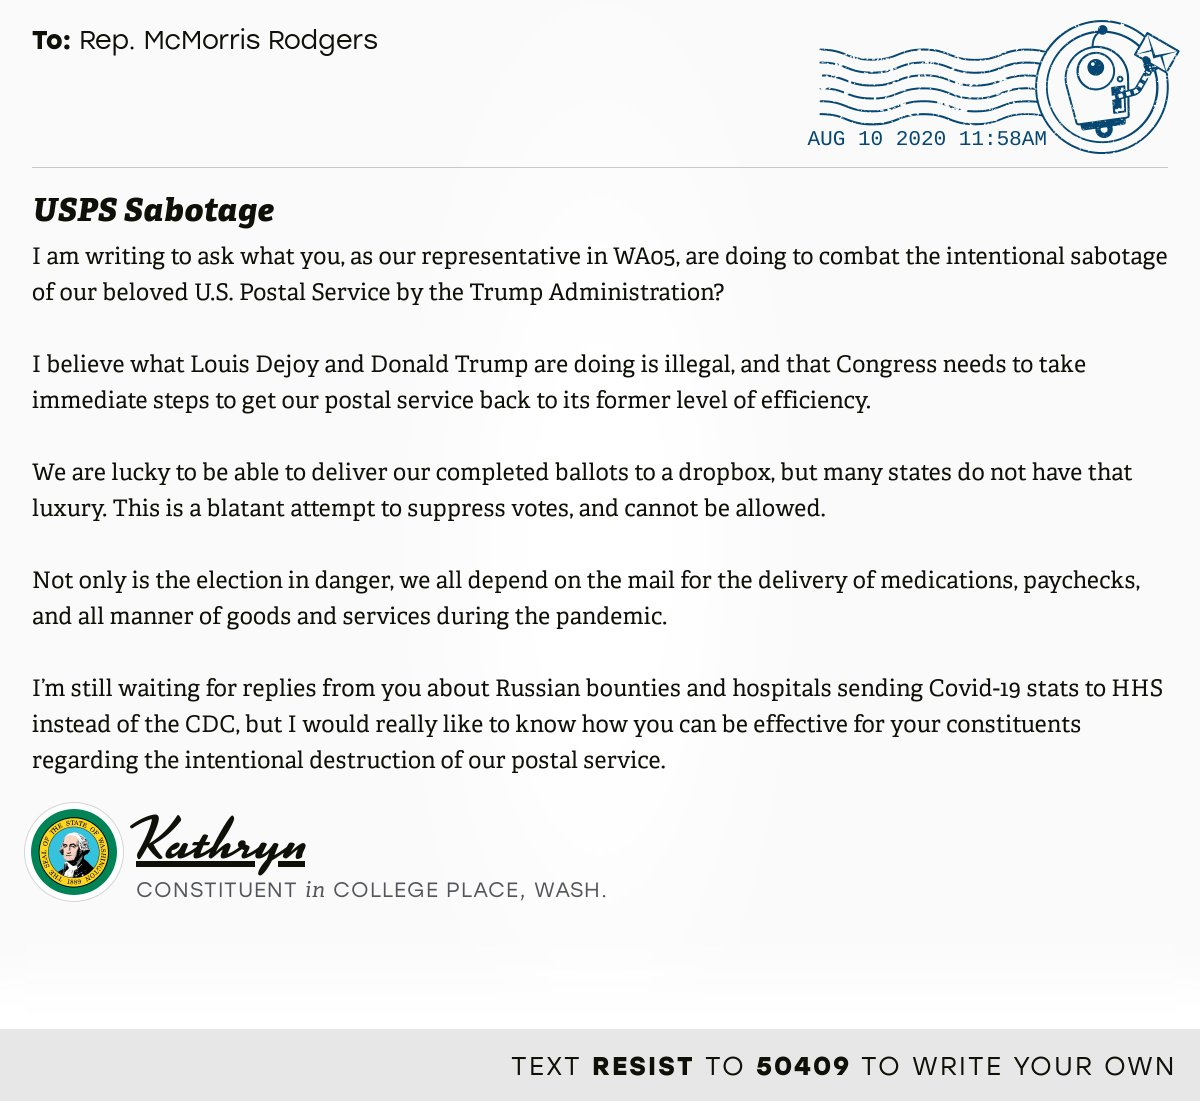 """📬 I delivered """"USPS Sabotage"""" from Kathryn, a constituent in College Place, Wash., to @CathyMcMorris #WA05 #waelex #VoteByMail  📝 Write your own: https://t.co/z5540KFSKD https://t.co/QPABcx0kOK"""